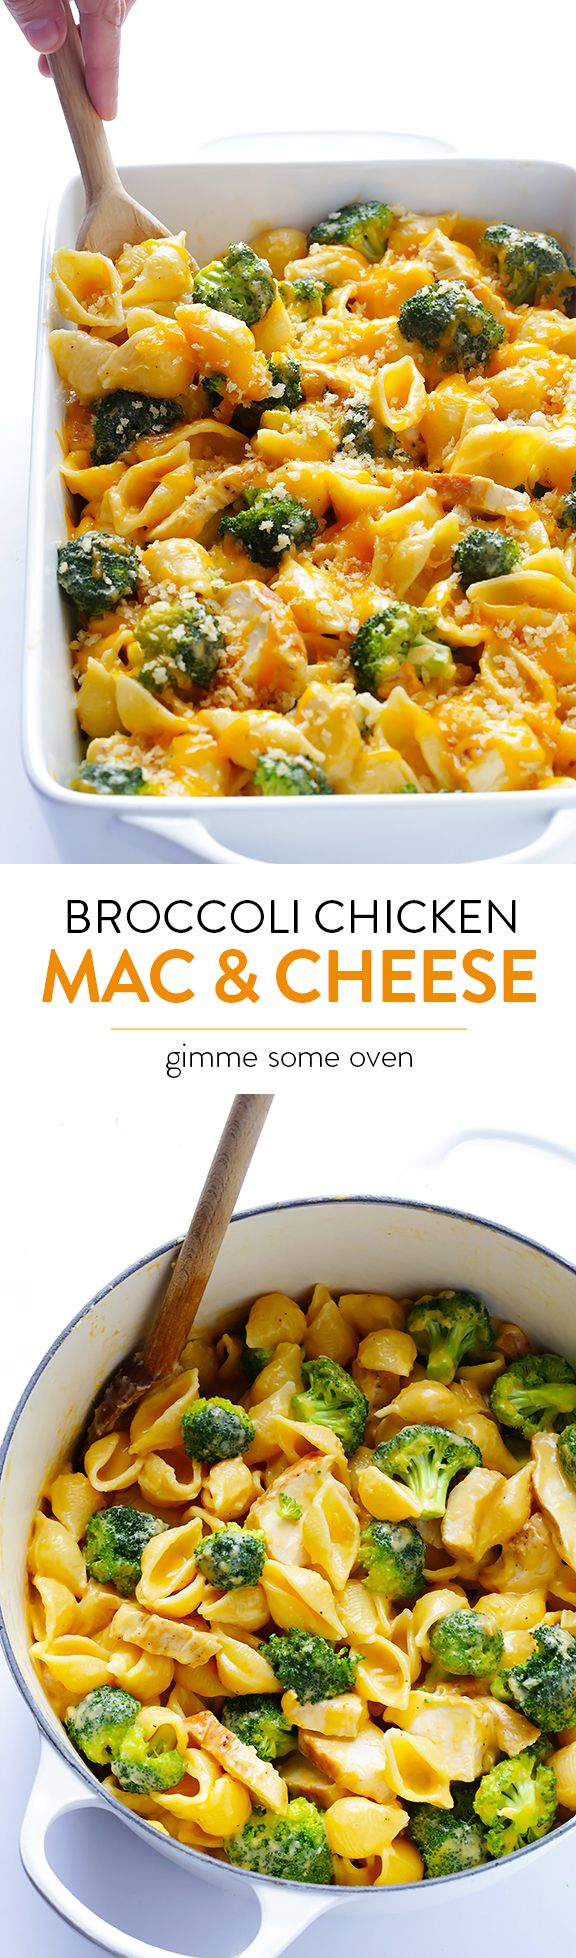 Broccoli Chicken Mac & Cheese -- easy to make, super tasty, and you can serve it stovetop-style or baked | gimmesomeoven.com